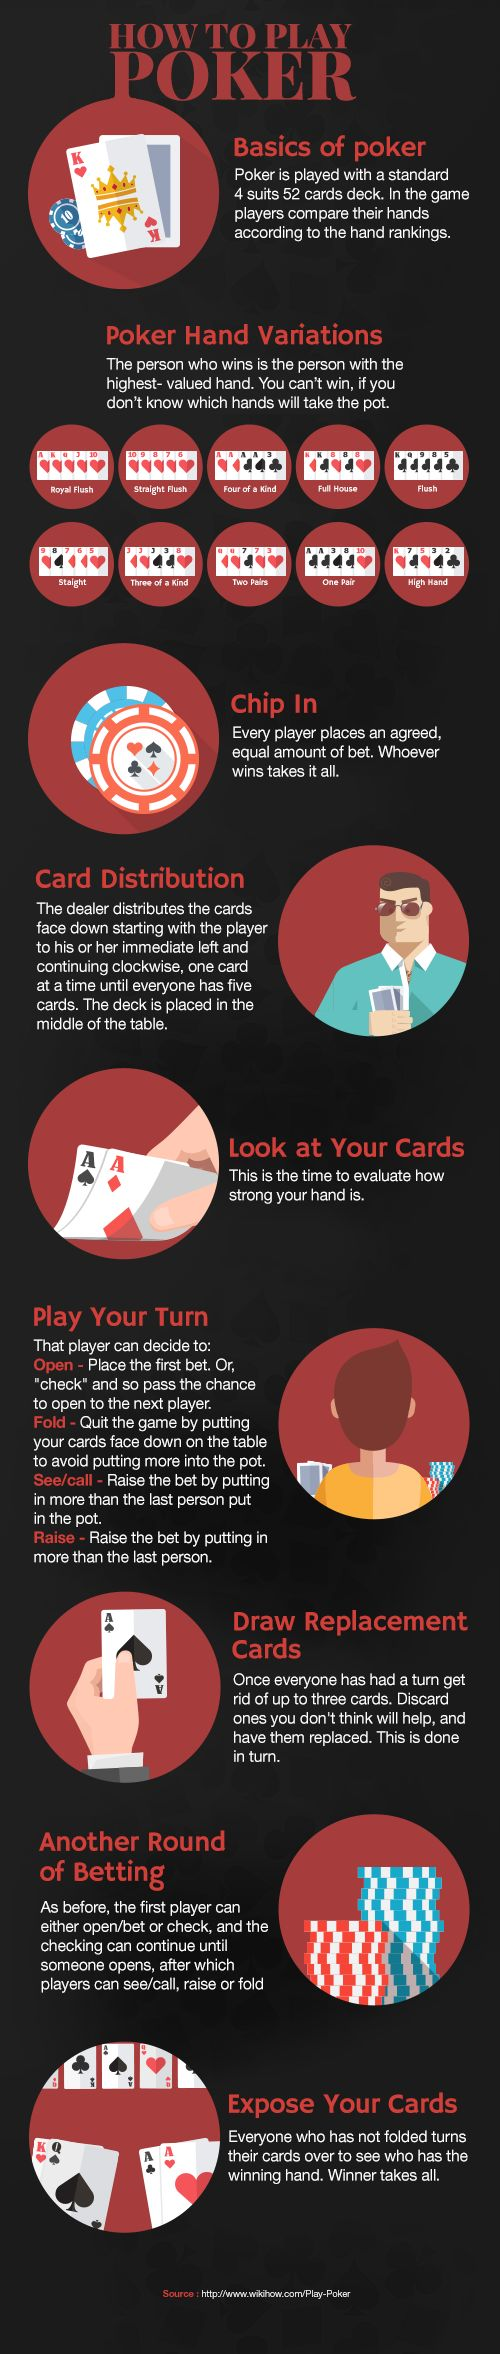 How To Play Poker #Infographic #HowTo #Poker